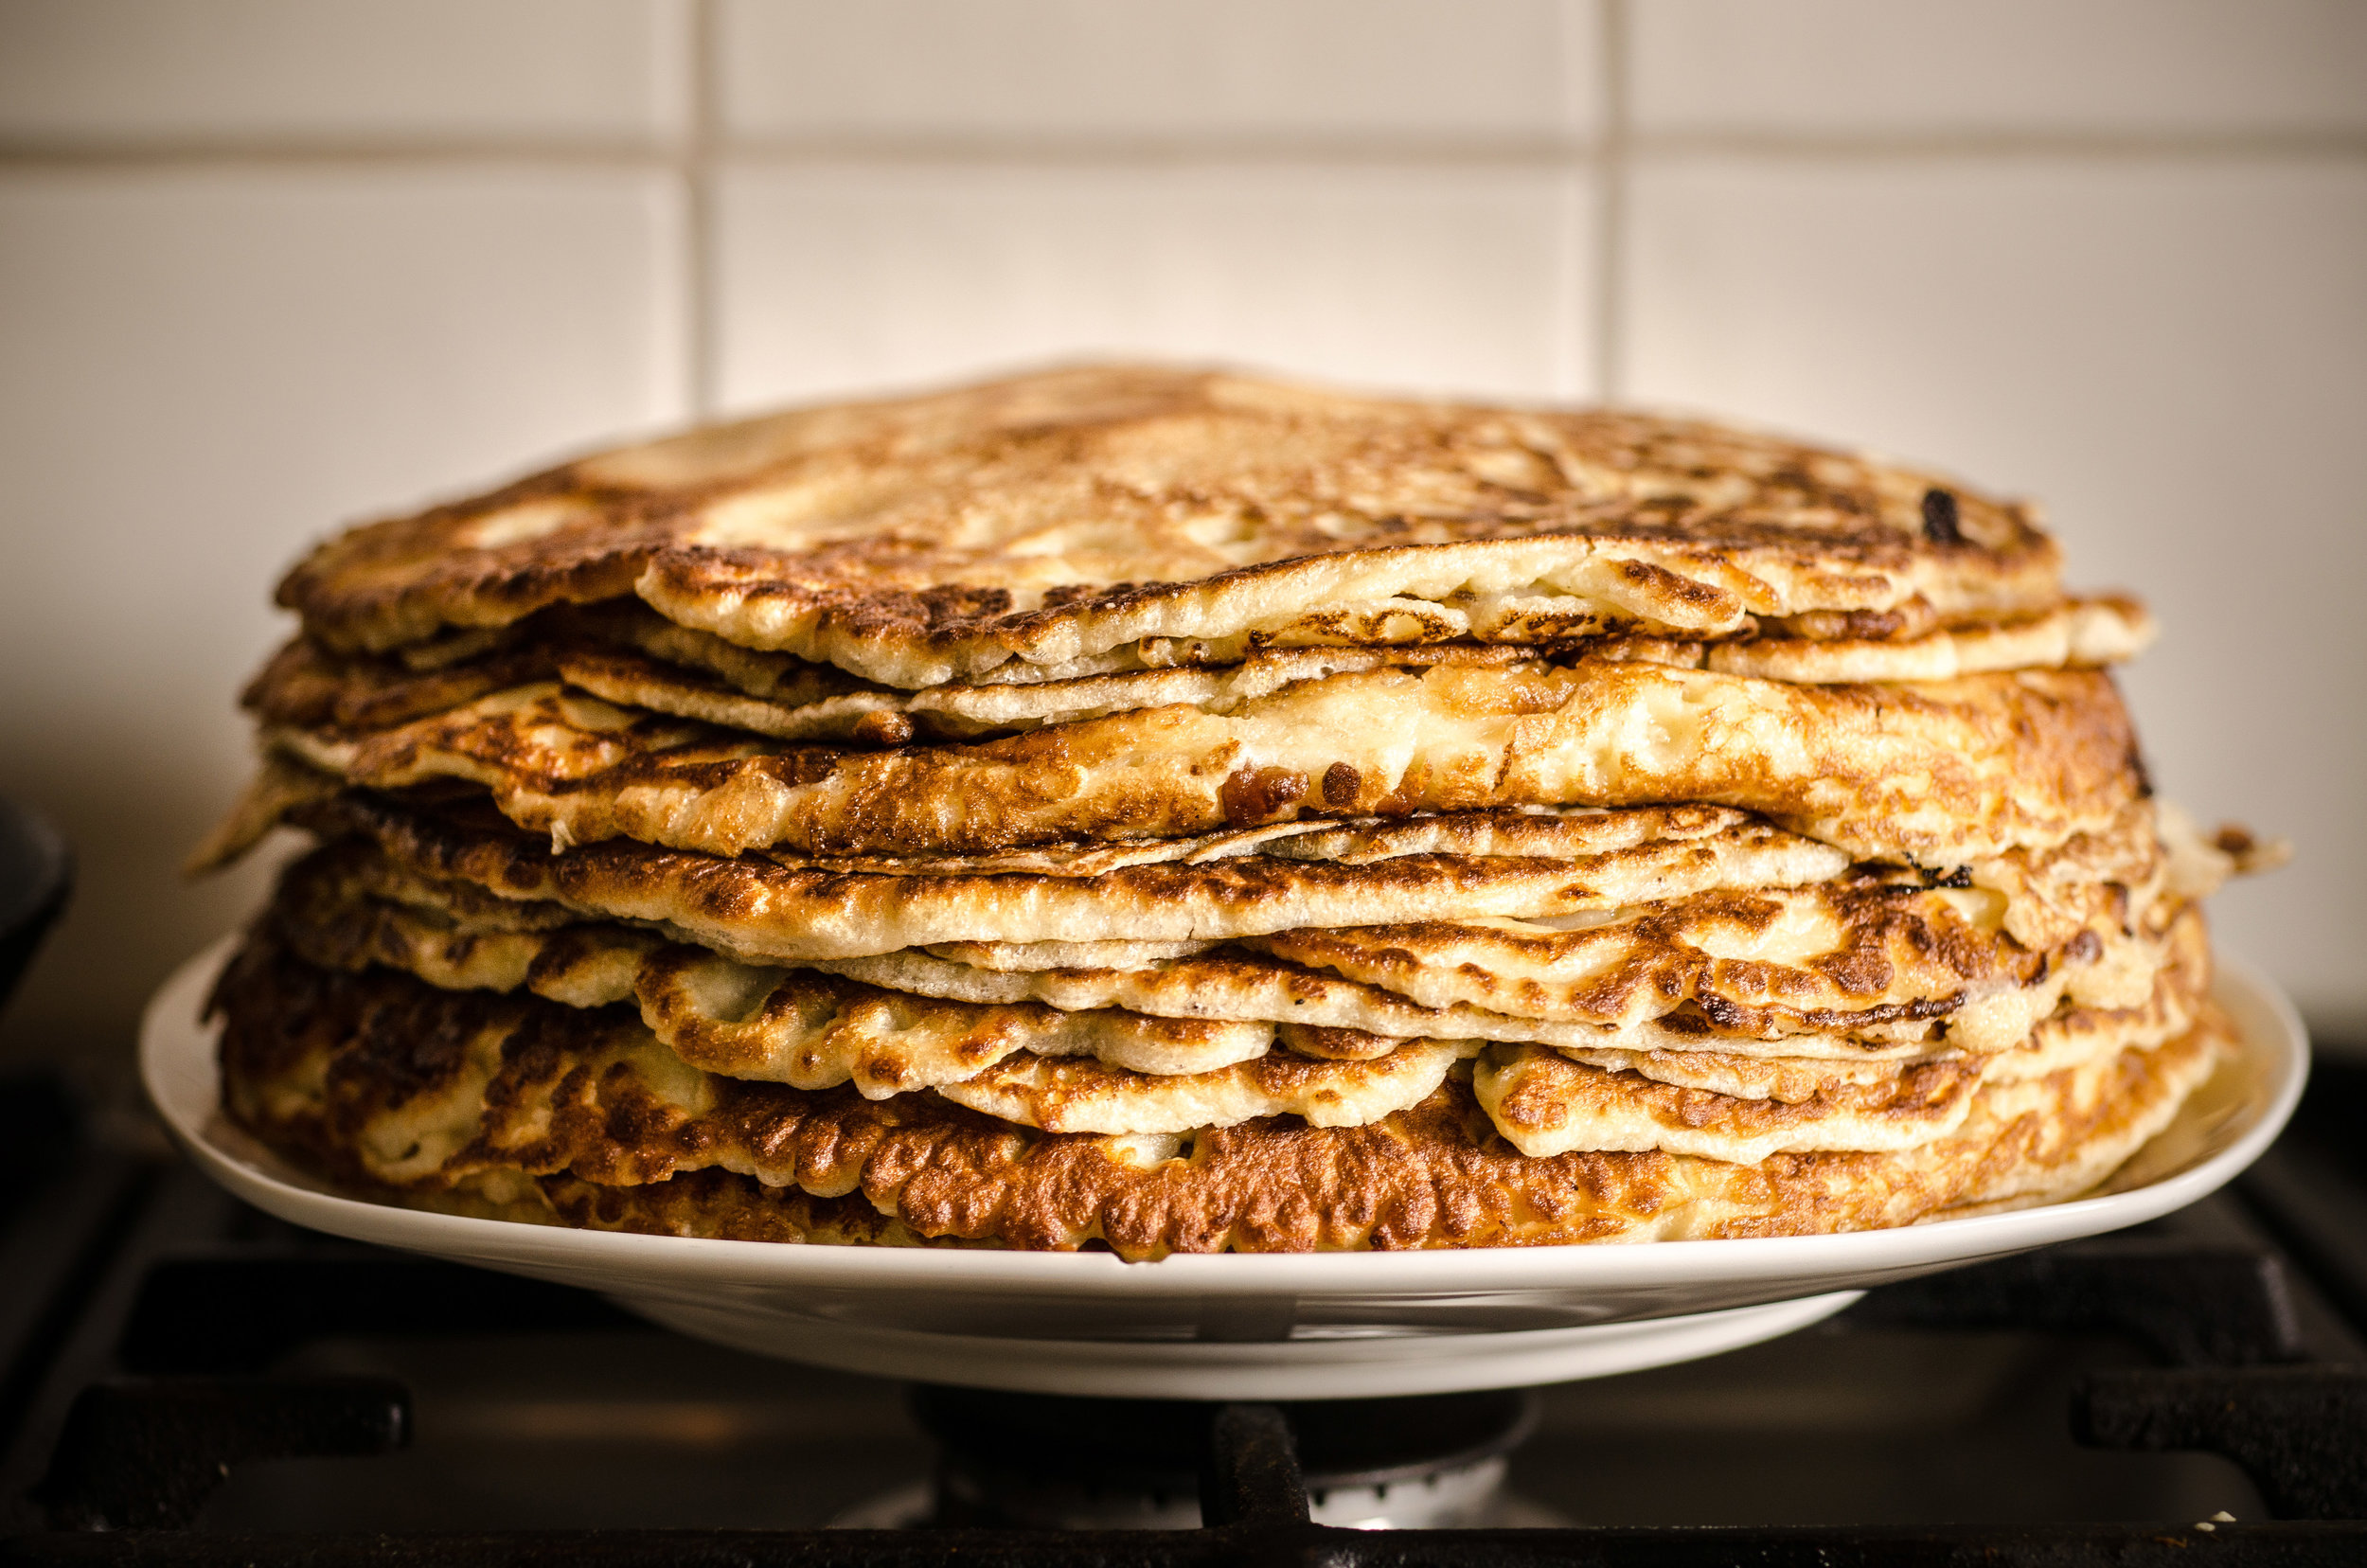 boss-fight-free-high-quality-stock-images-photos-photography-pancakes.jpg